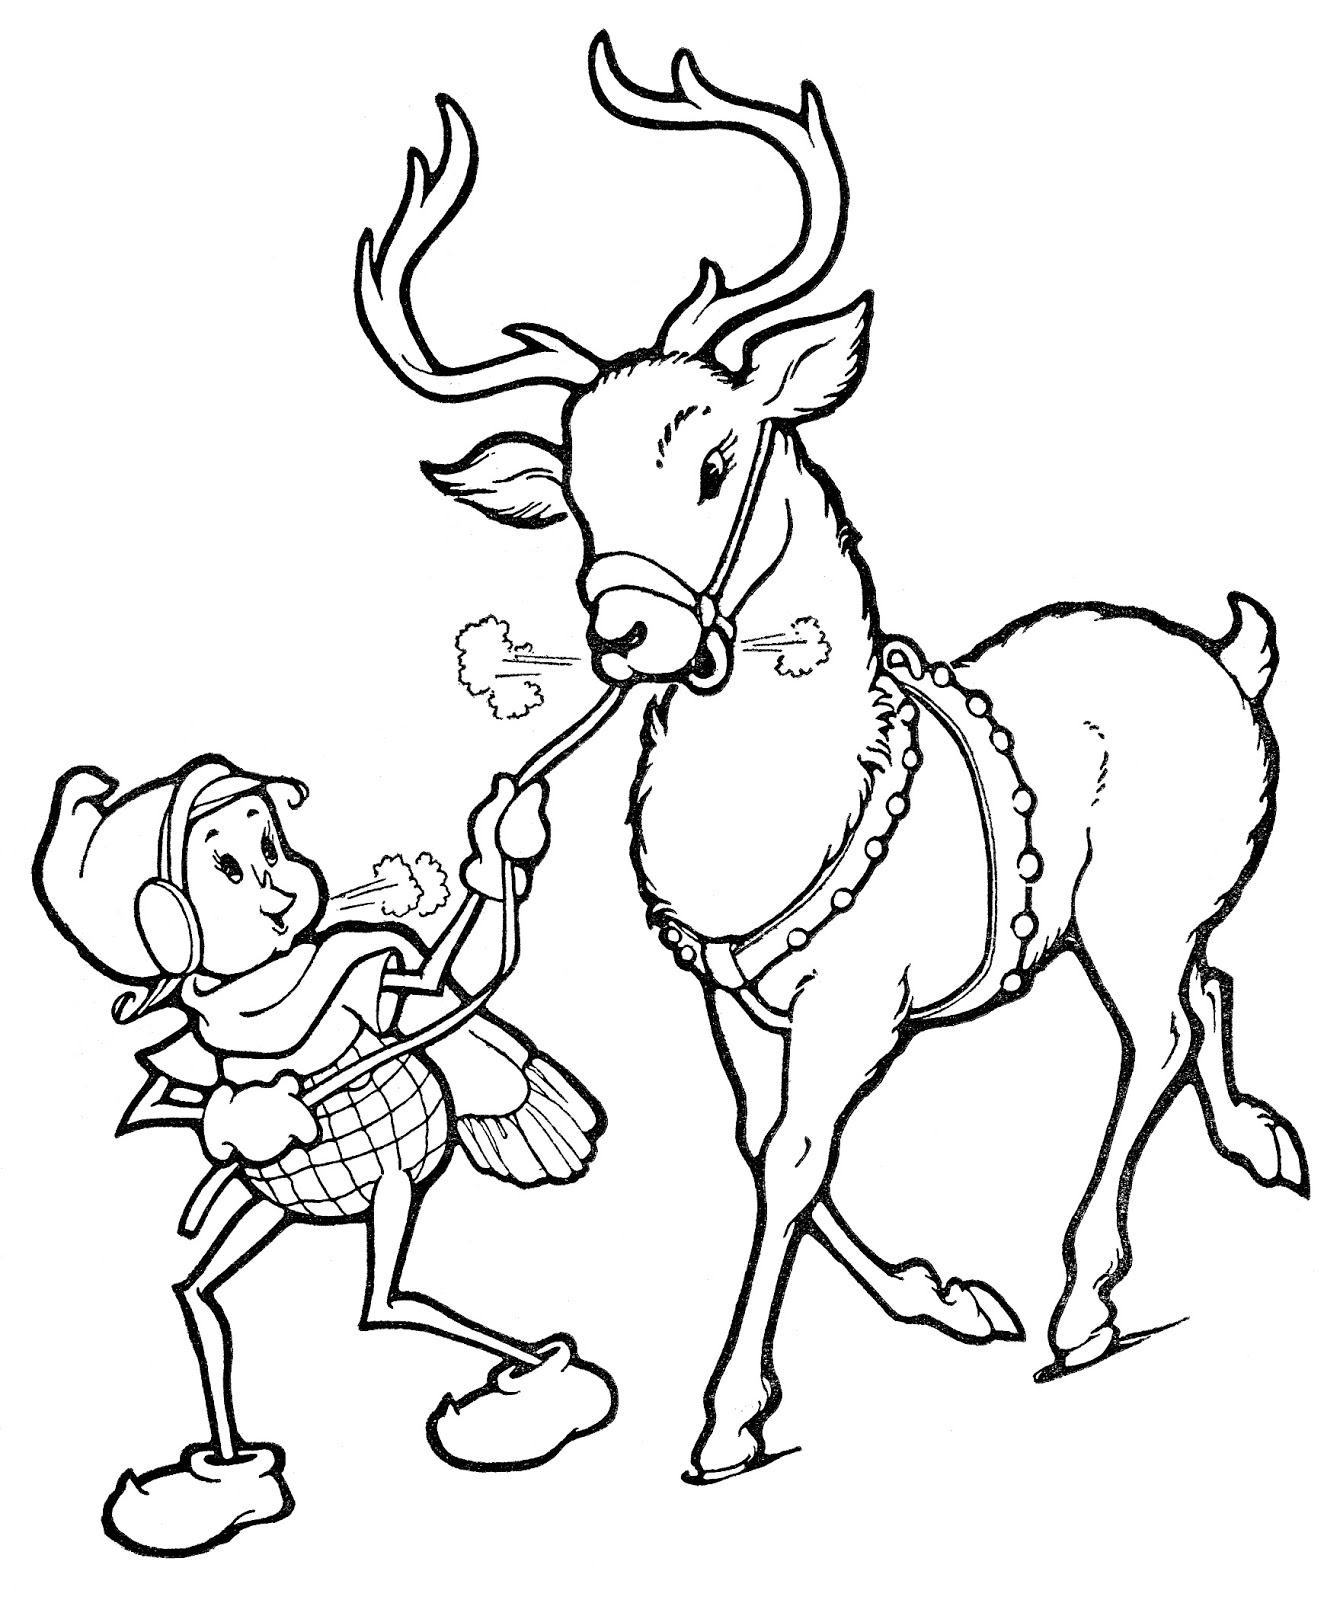 Drawn reindeer xma Line Art The Elf with